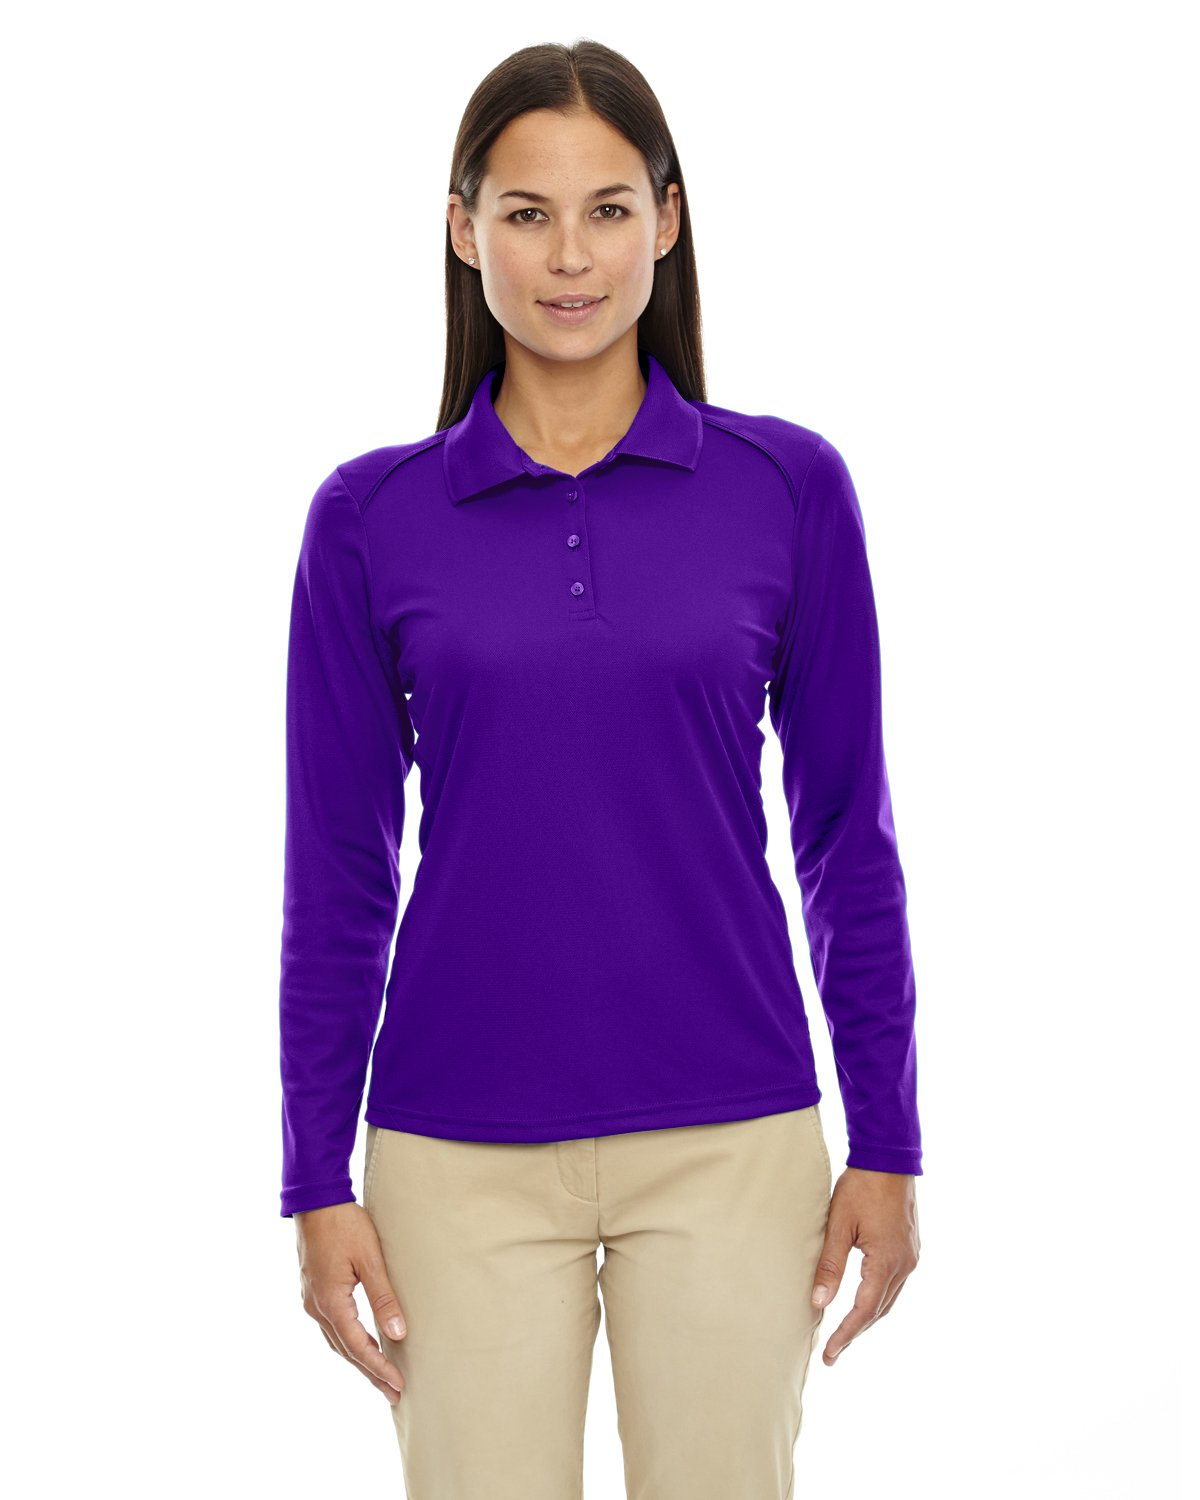 Ash City Ladies Armour Long Sleeve Polo (X-Large, Campus Purple) by Ash City Apparel